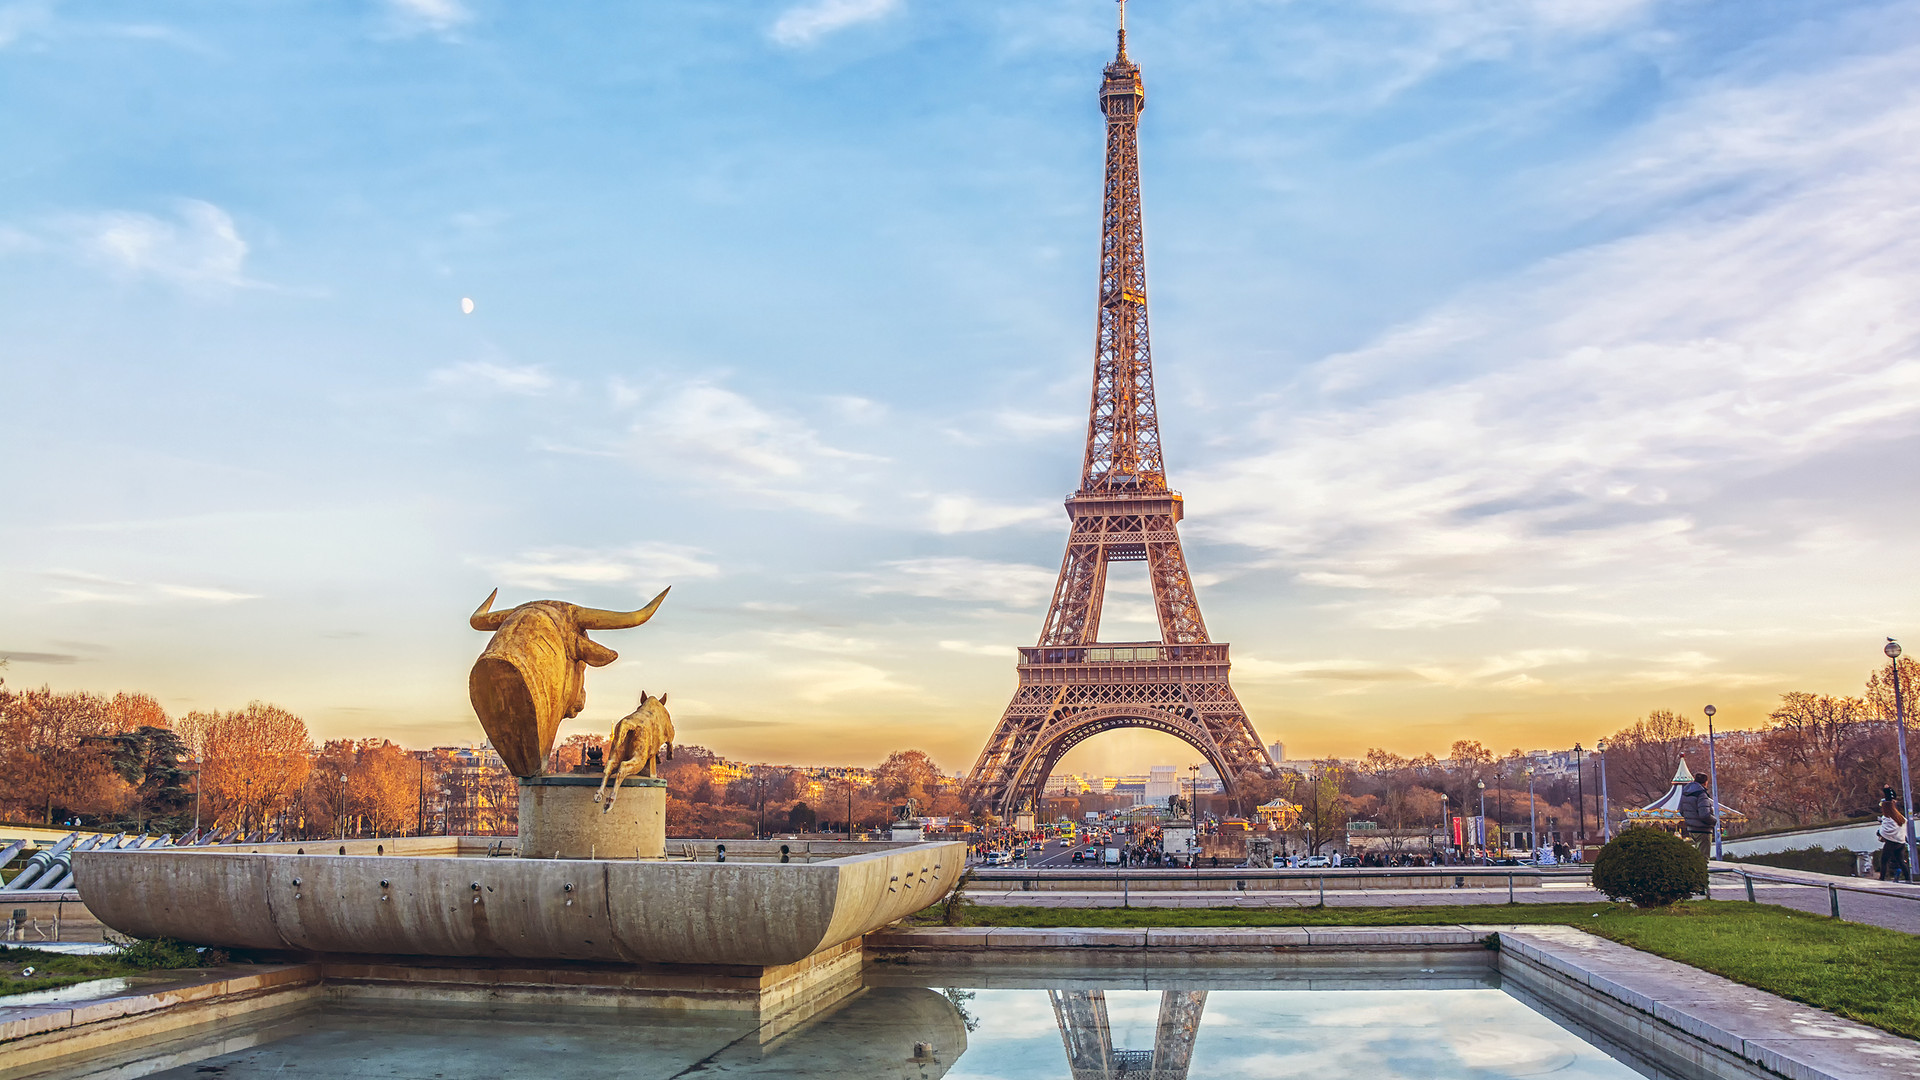 Eiffel Tower at sunset in Paris, France.